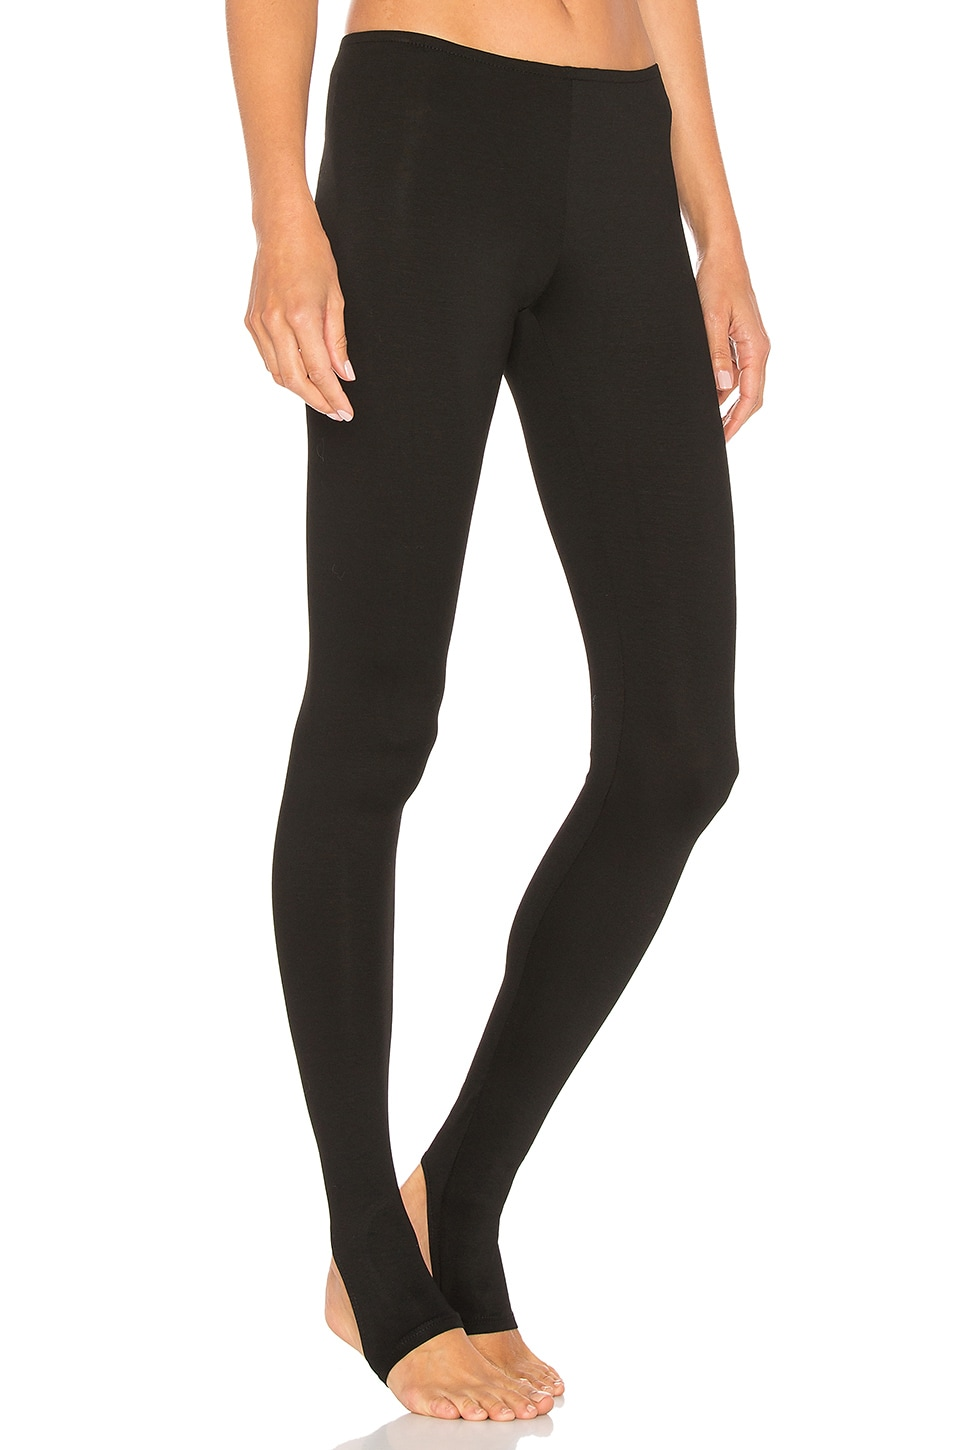 Only Hearts So Fine Stirrup Legging in Black